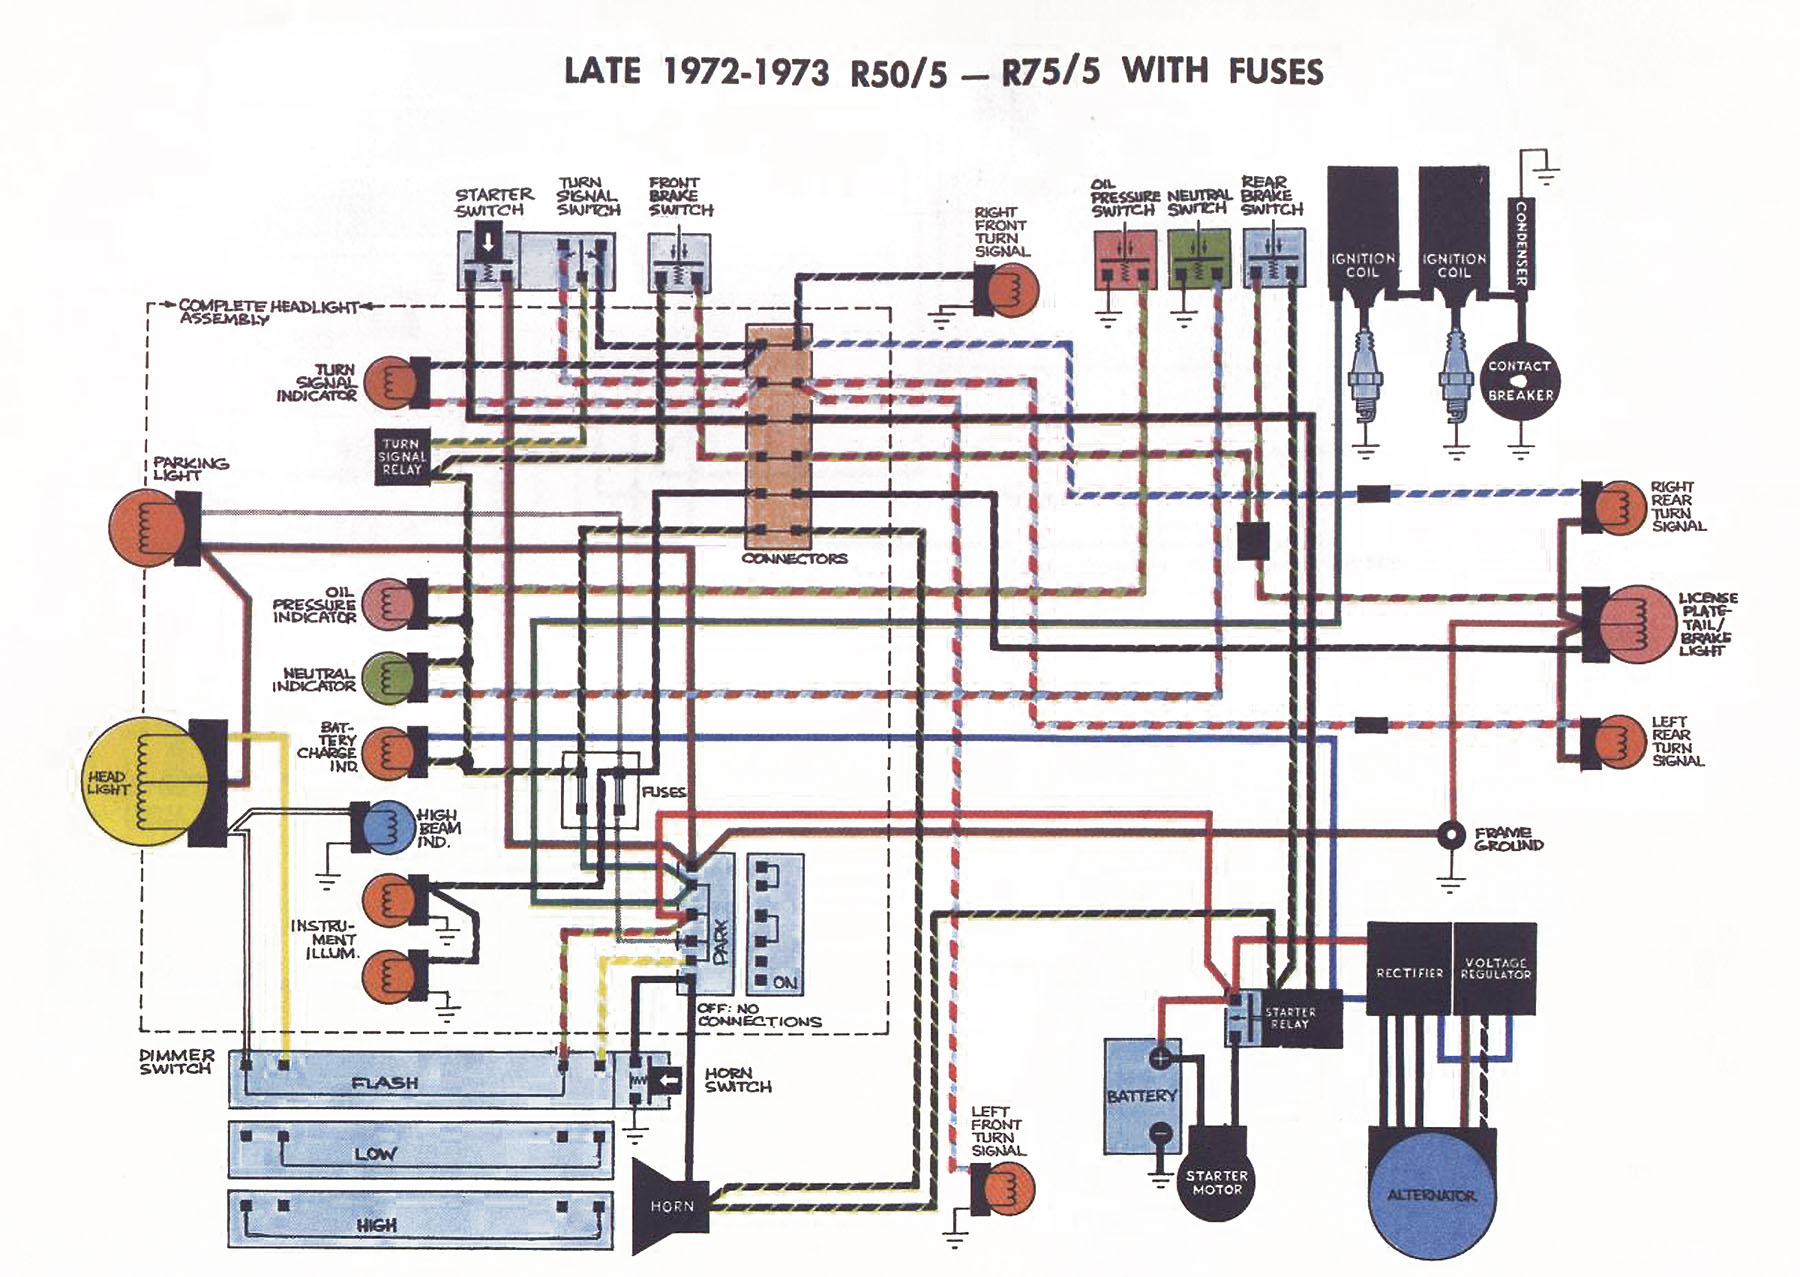 1971 bmw r75 5 wiring diagram r75/5 not starting after a long days ride